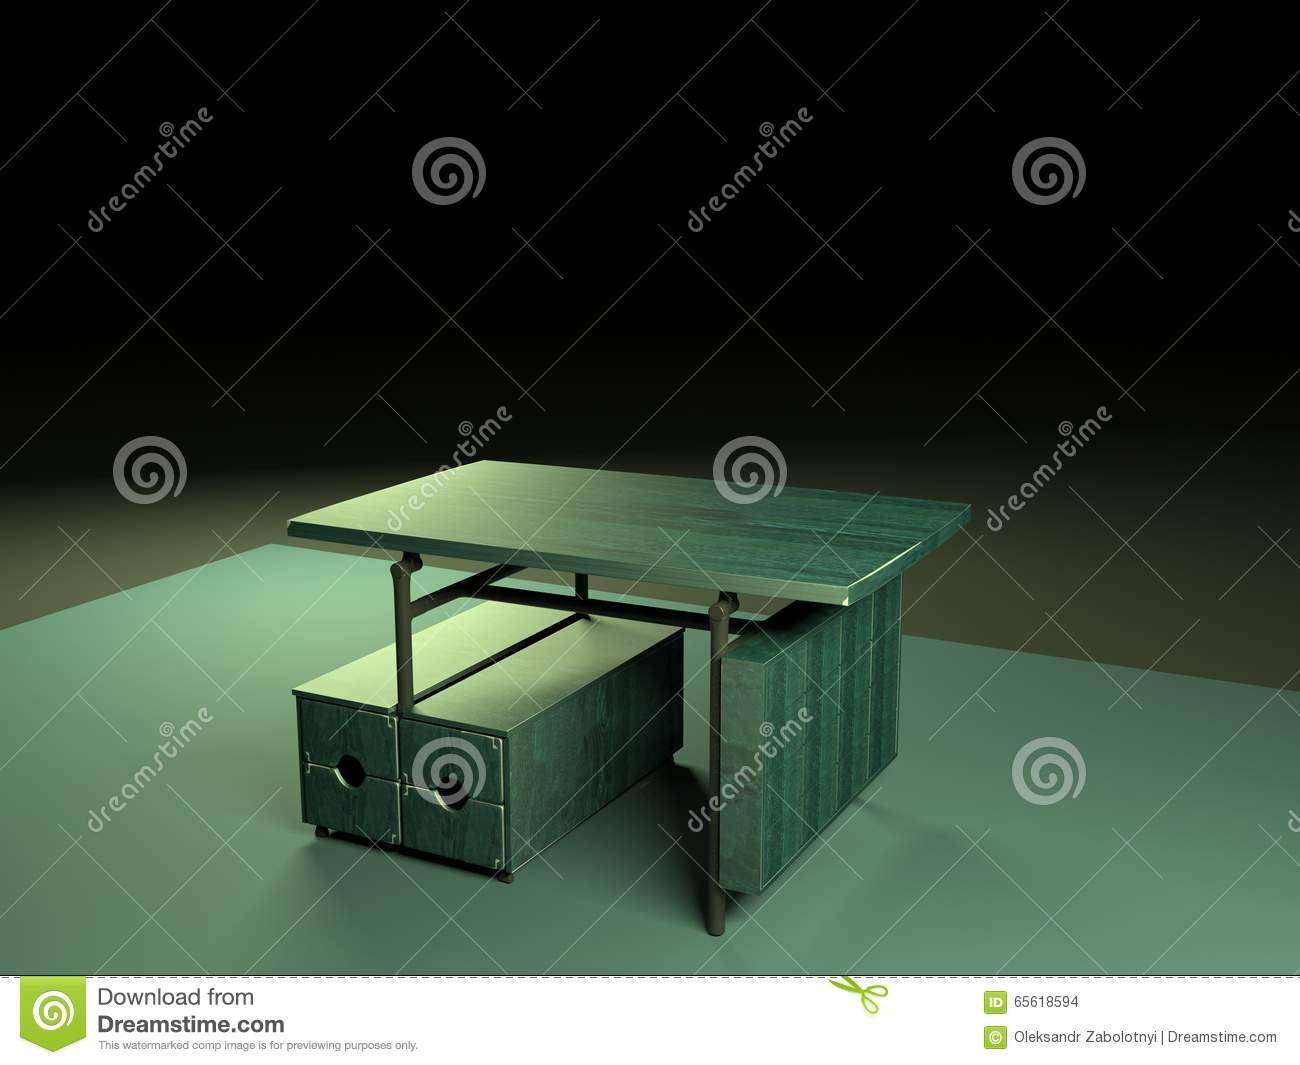 Folding table 3d model-1 stock illustration  Illustration of